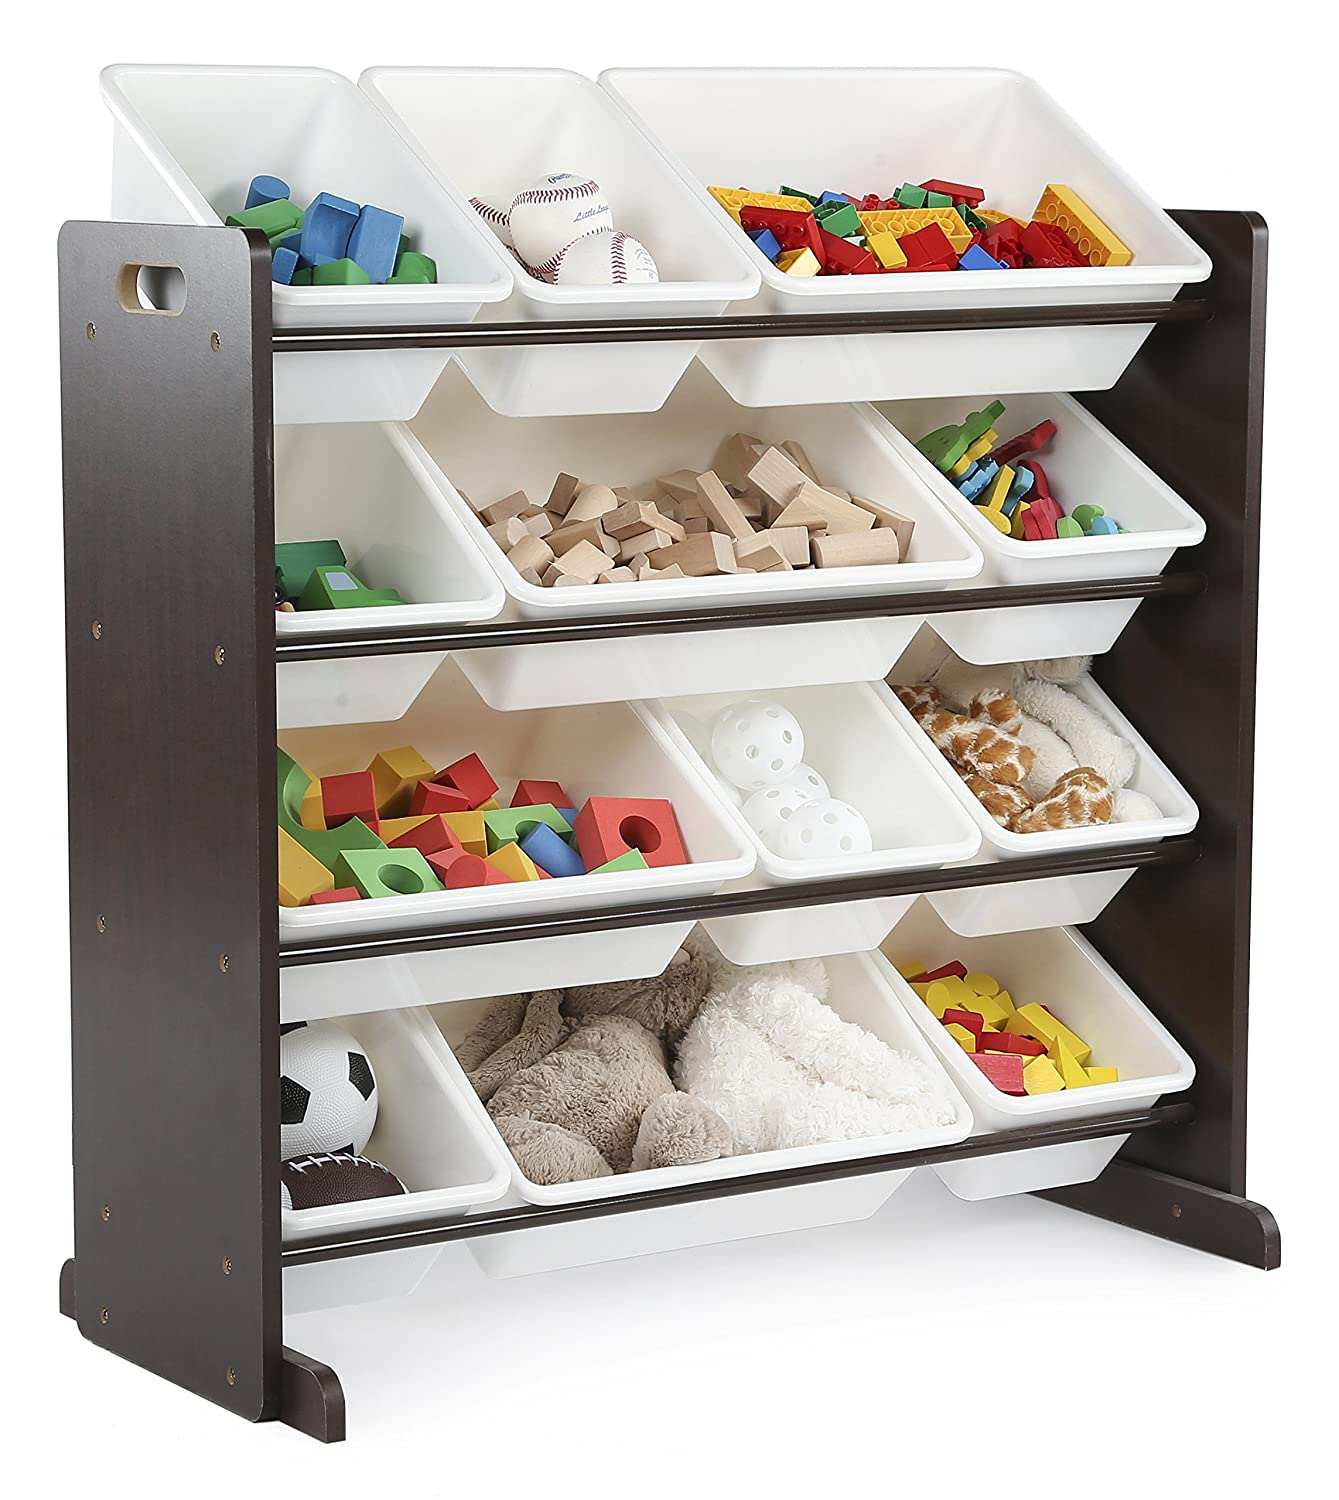 Amazon.com: Tot Tutors Kidsu0027 Toy Storage Organizer With 12 Plastic Bins,  Espresso/White (Espresso Collection): Home U0026 Kitchen